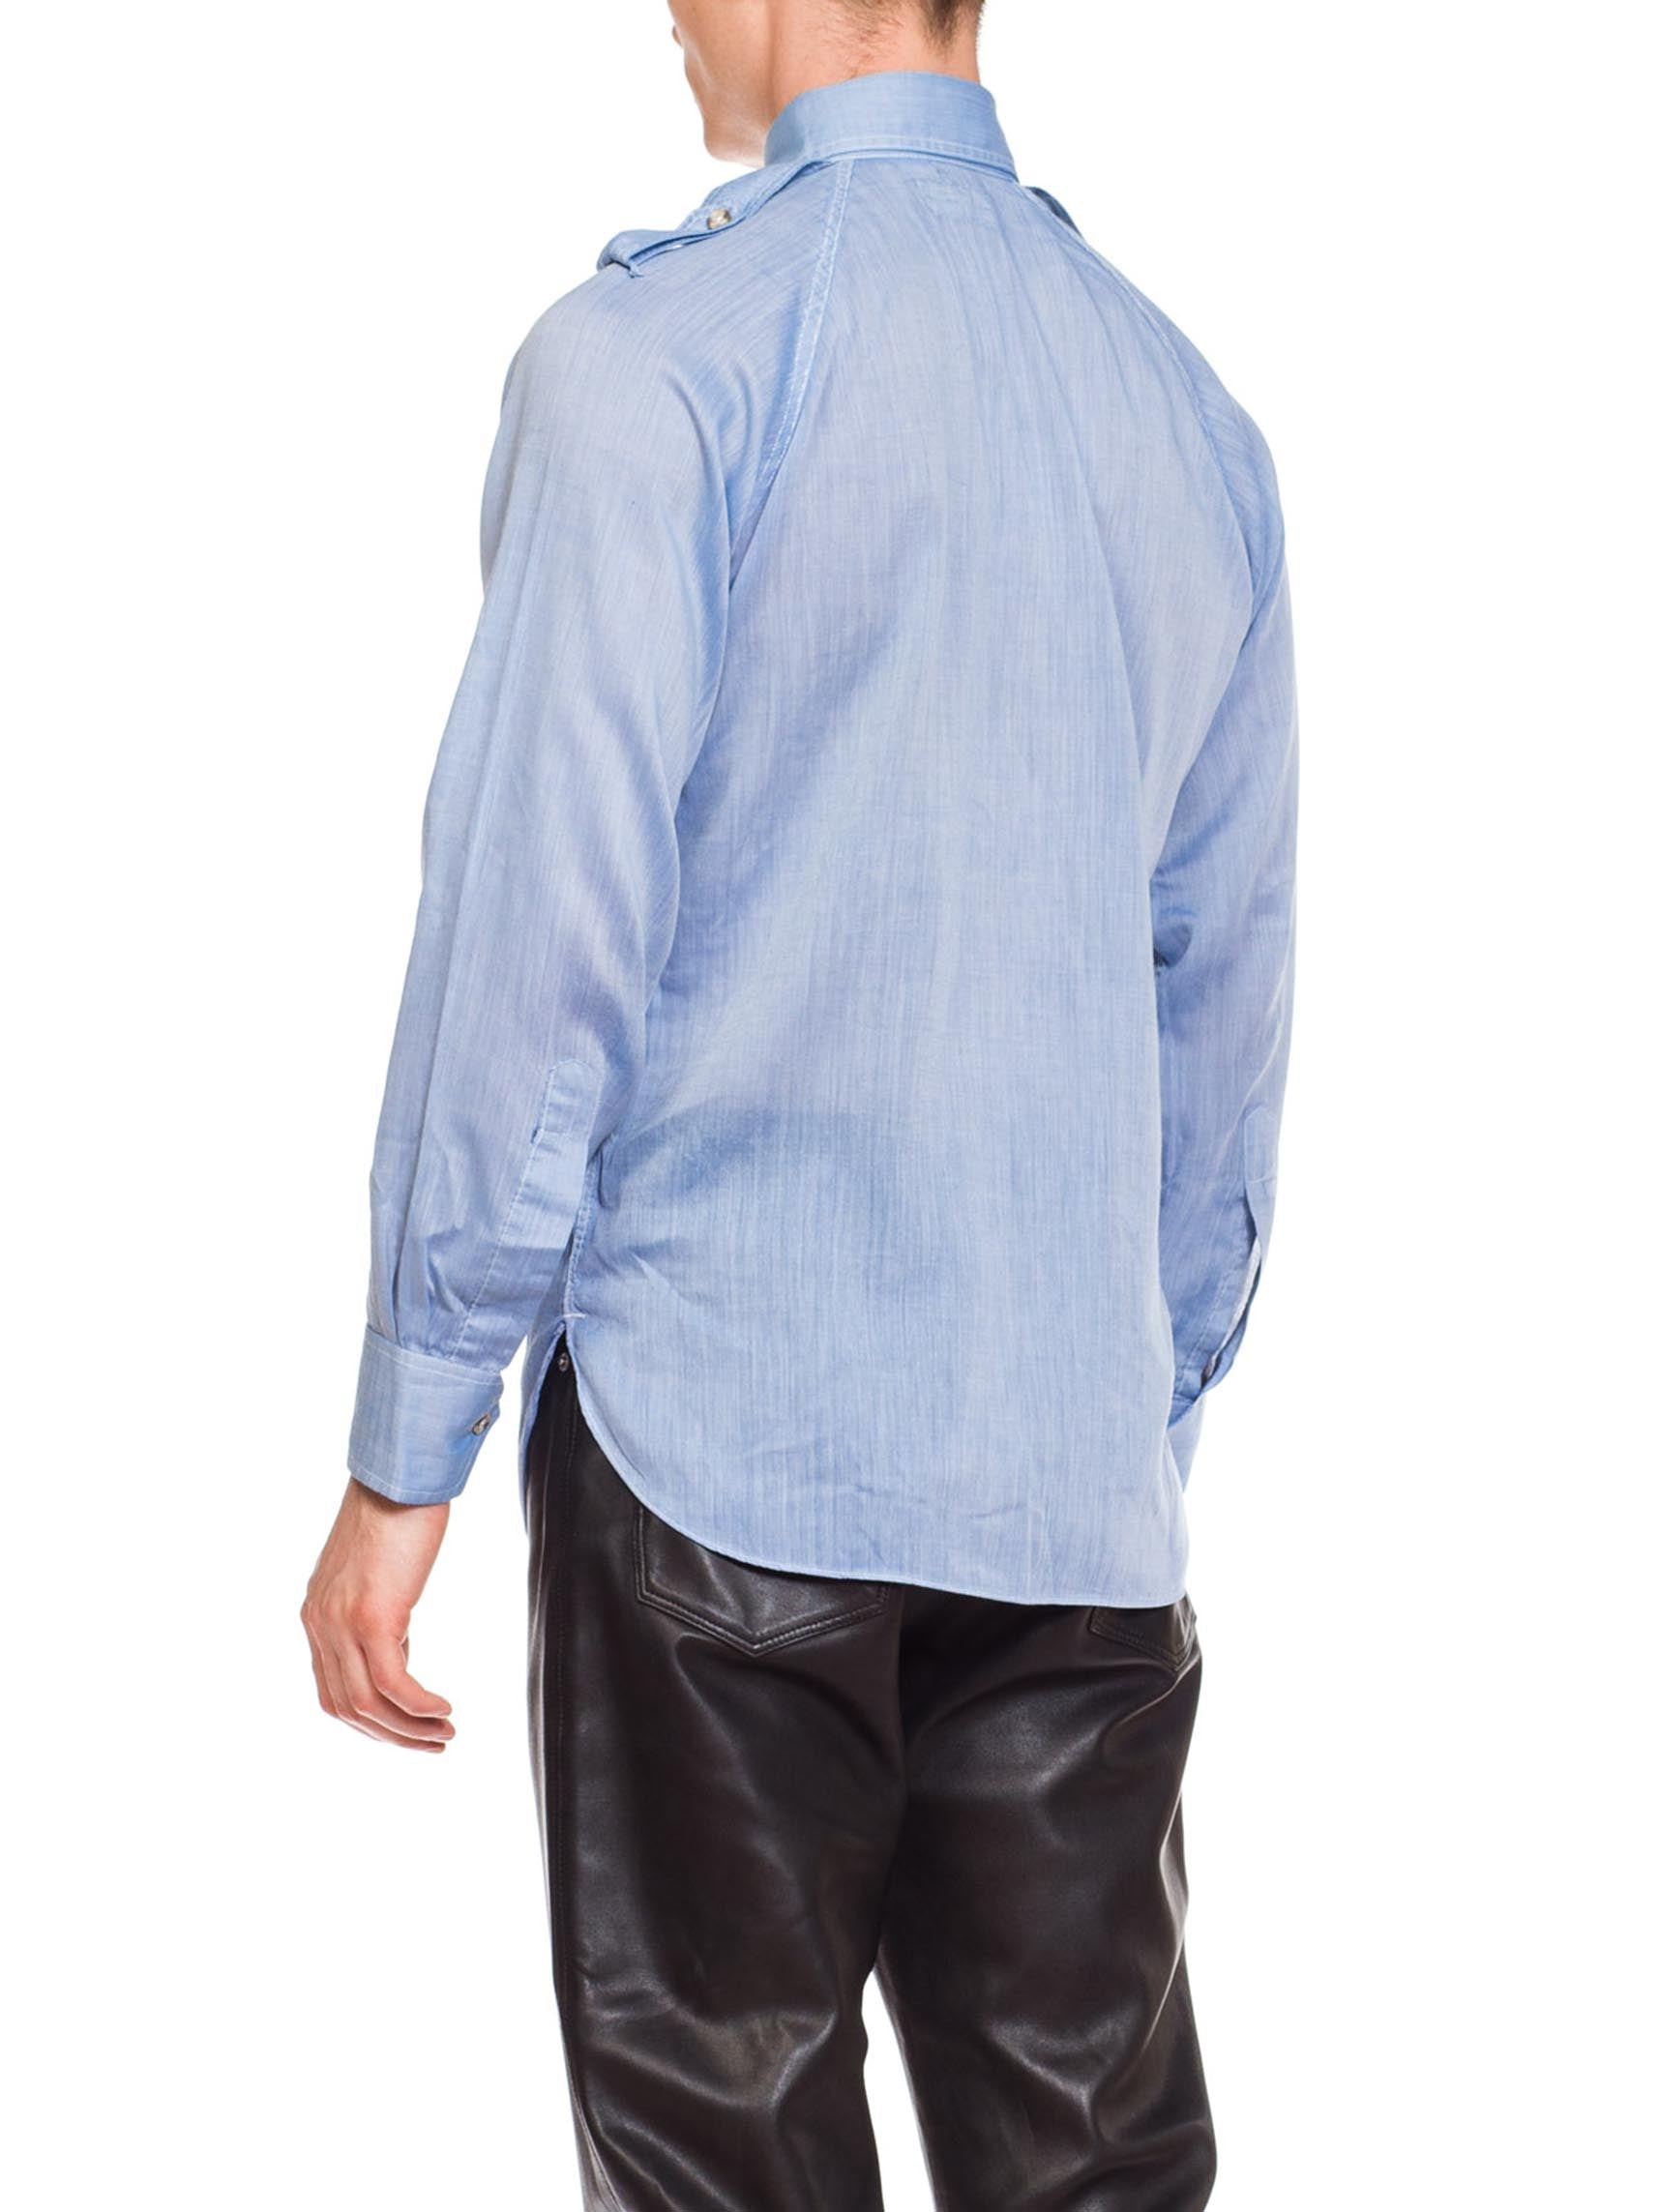 1970S Poly/Cotton Men's Featherweight Chambray Popover Shirt With Epaulets